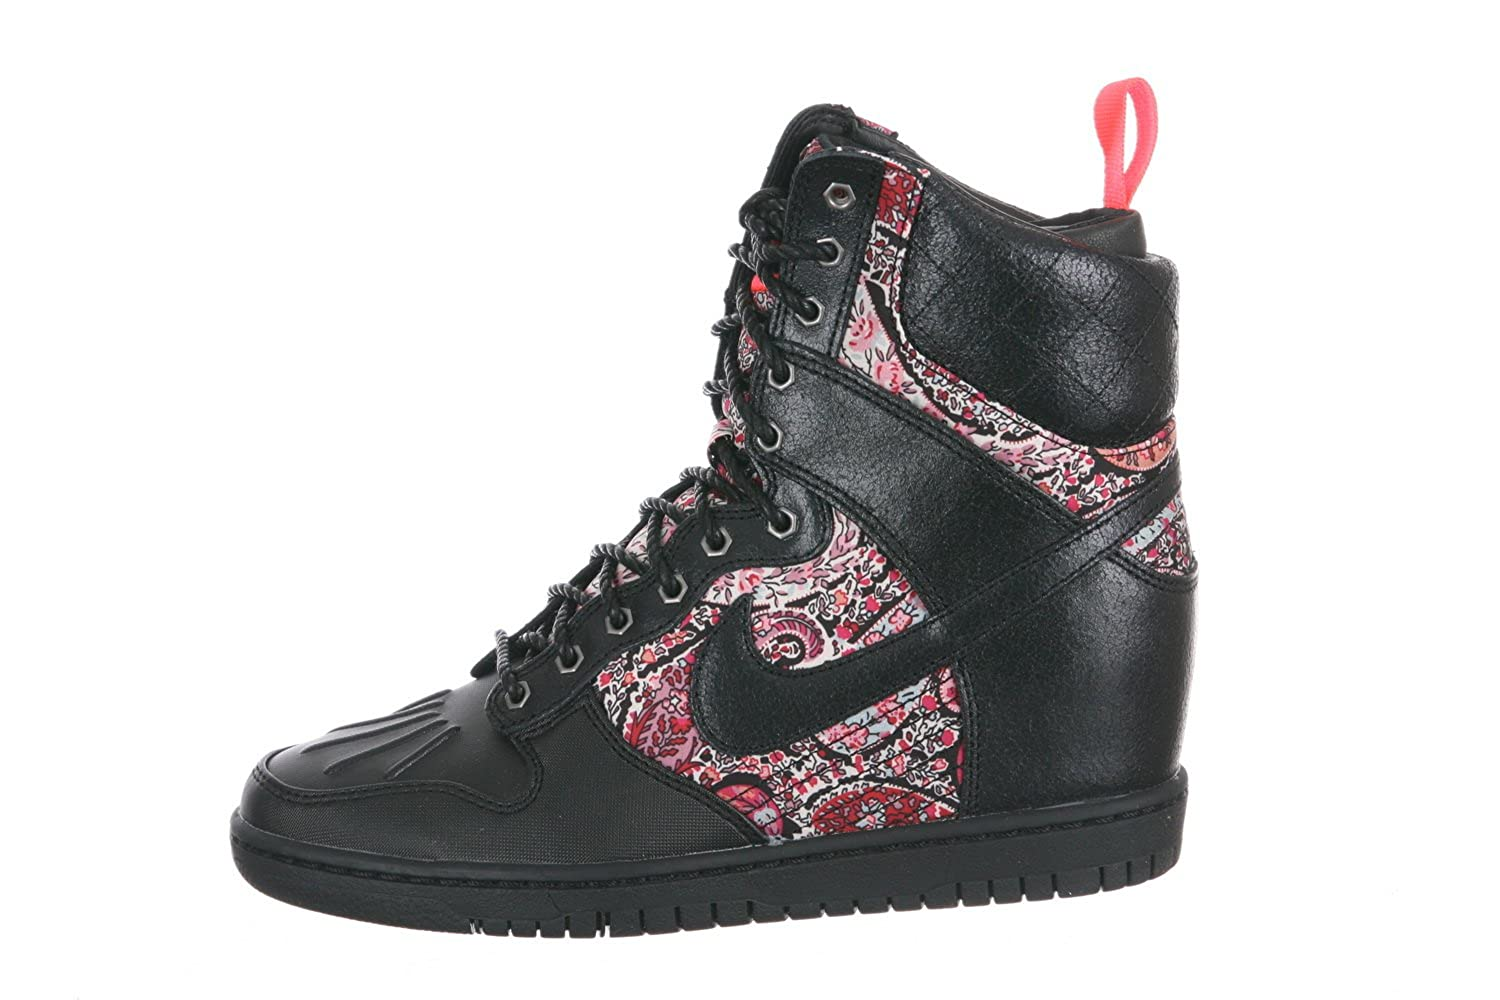 huge selection of 802ad 298d6 NIKE Dunk Sky Hi Liberty Sneakerboot QS (WMNS) Baskets Femme 632180-006-36-5.5  Rose  Amazon.co.uk  Shoes   Bags